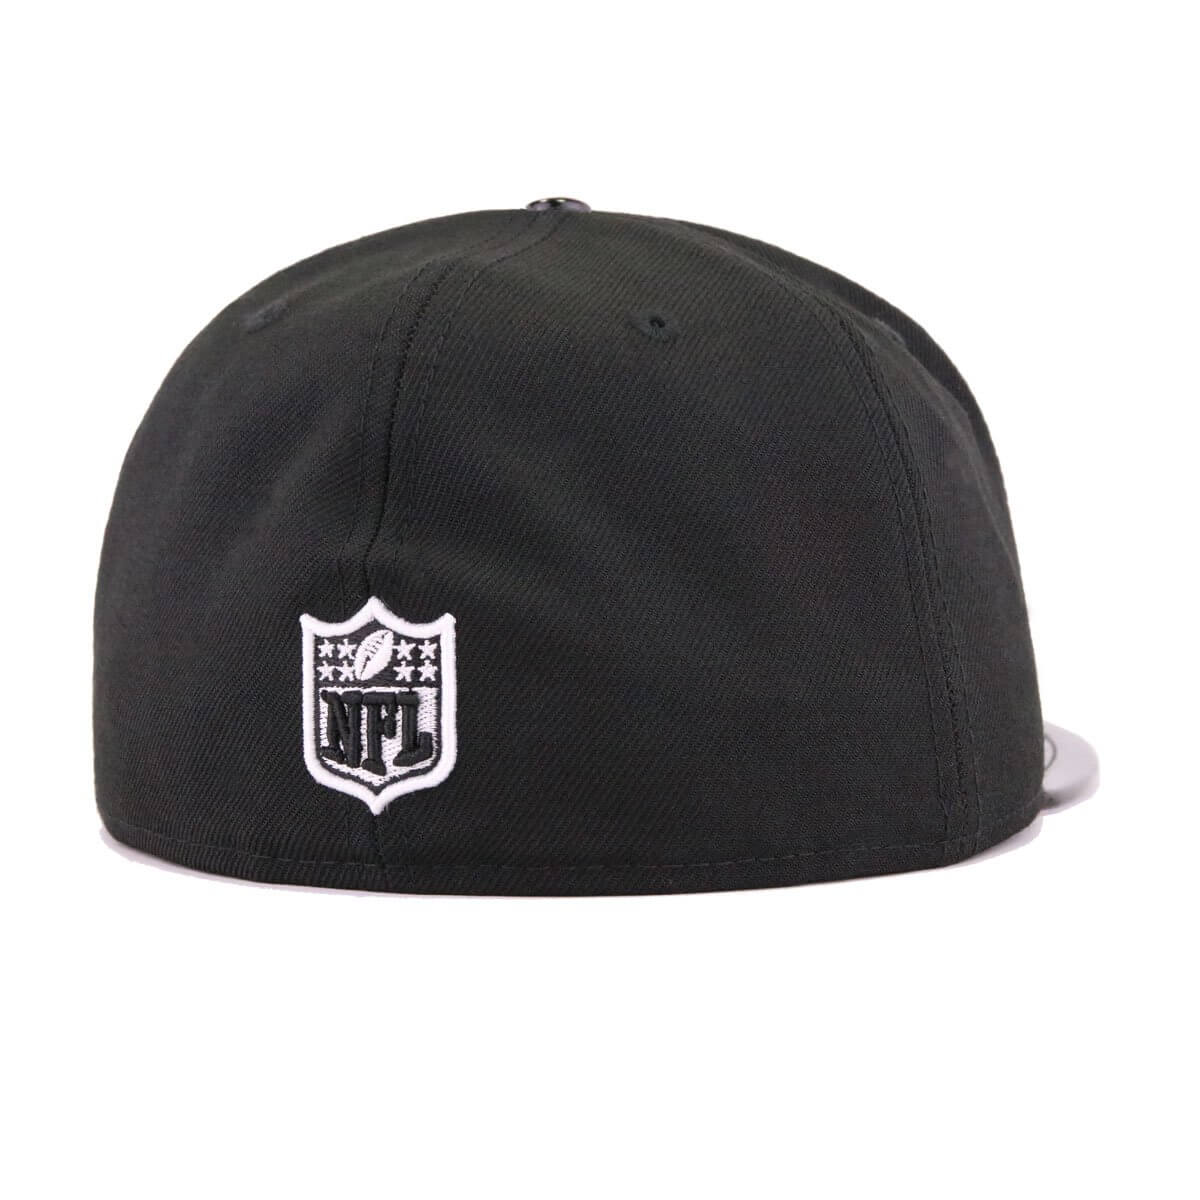 Las Vegas Raiders Black Patent Leather New Era 59Fifty Fitted